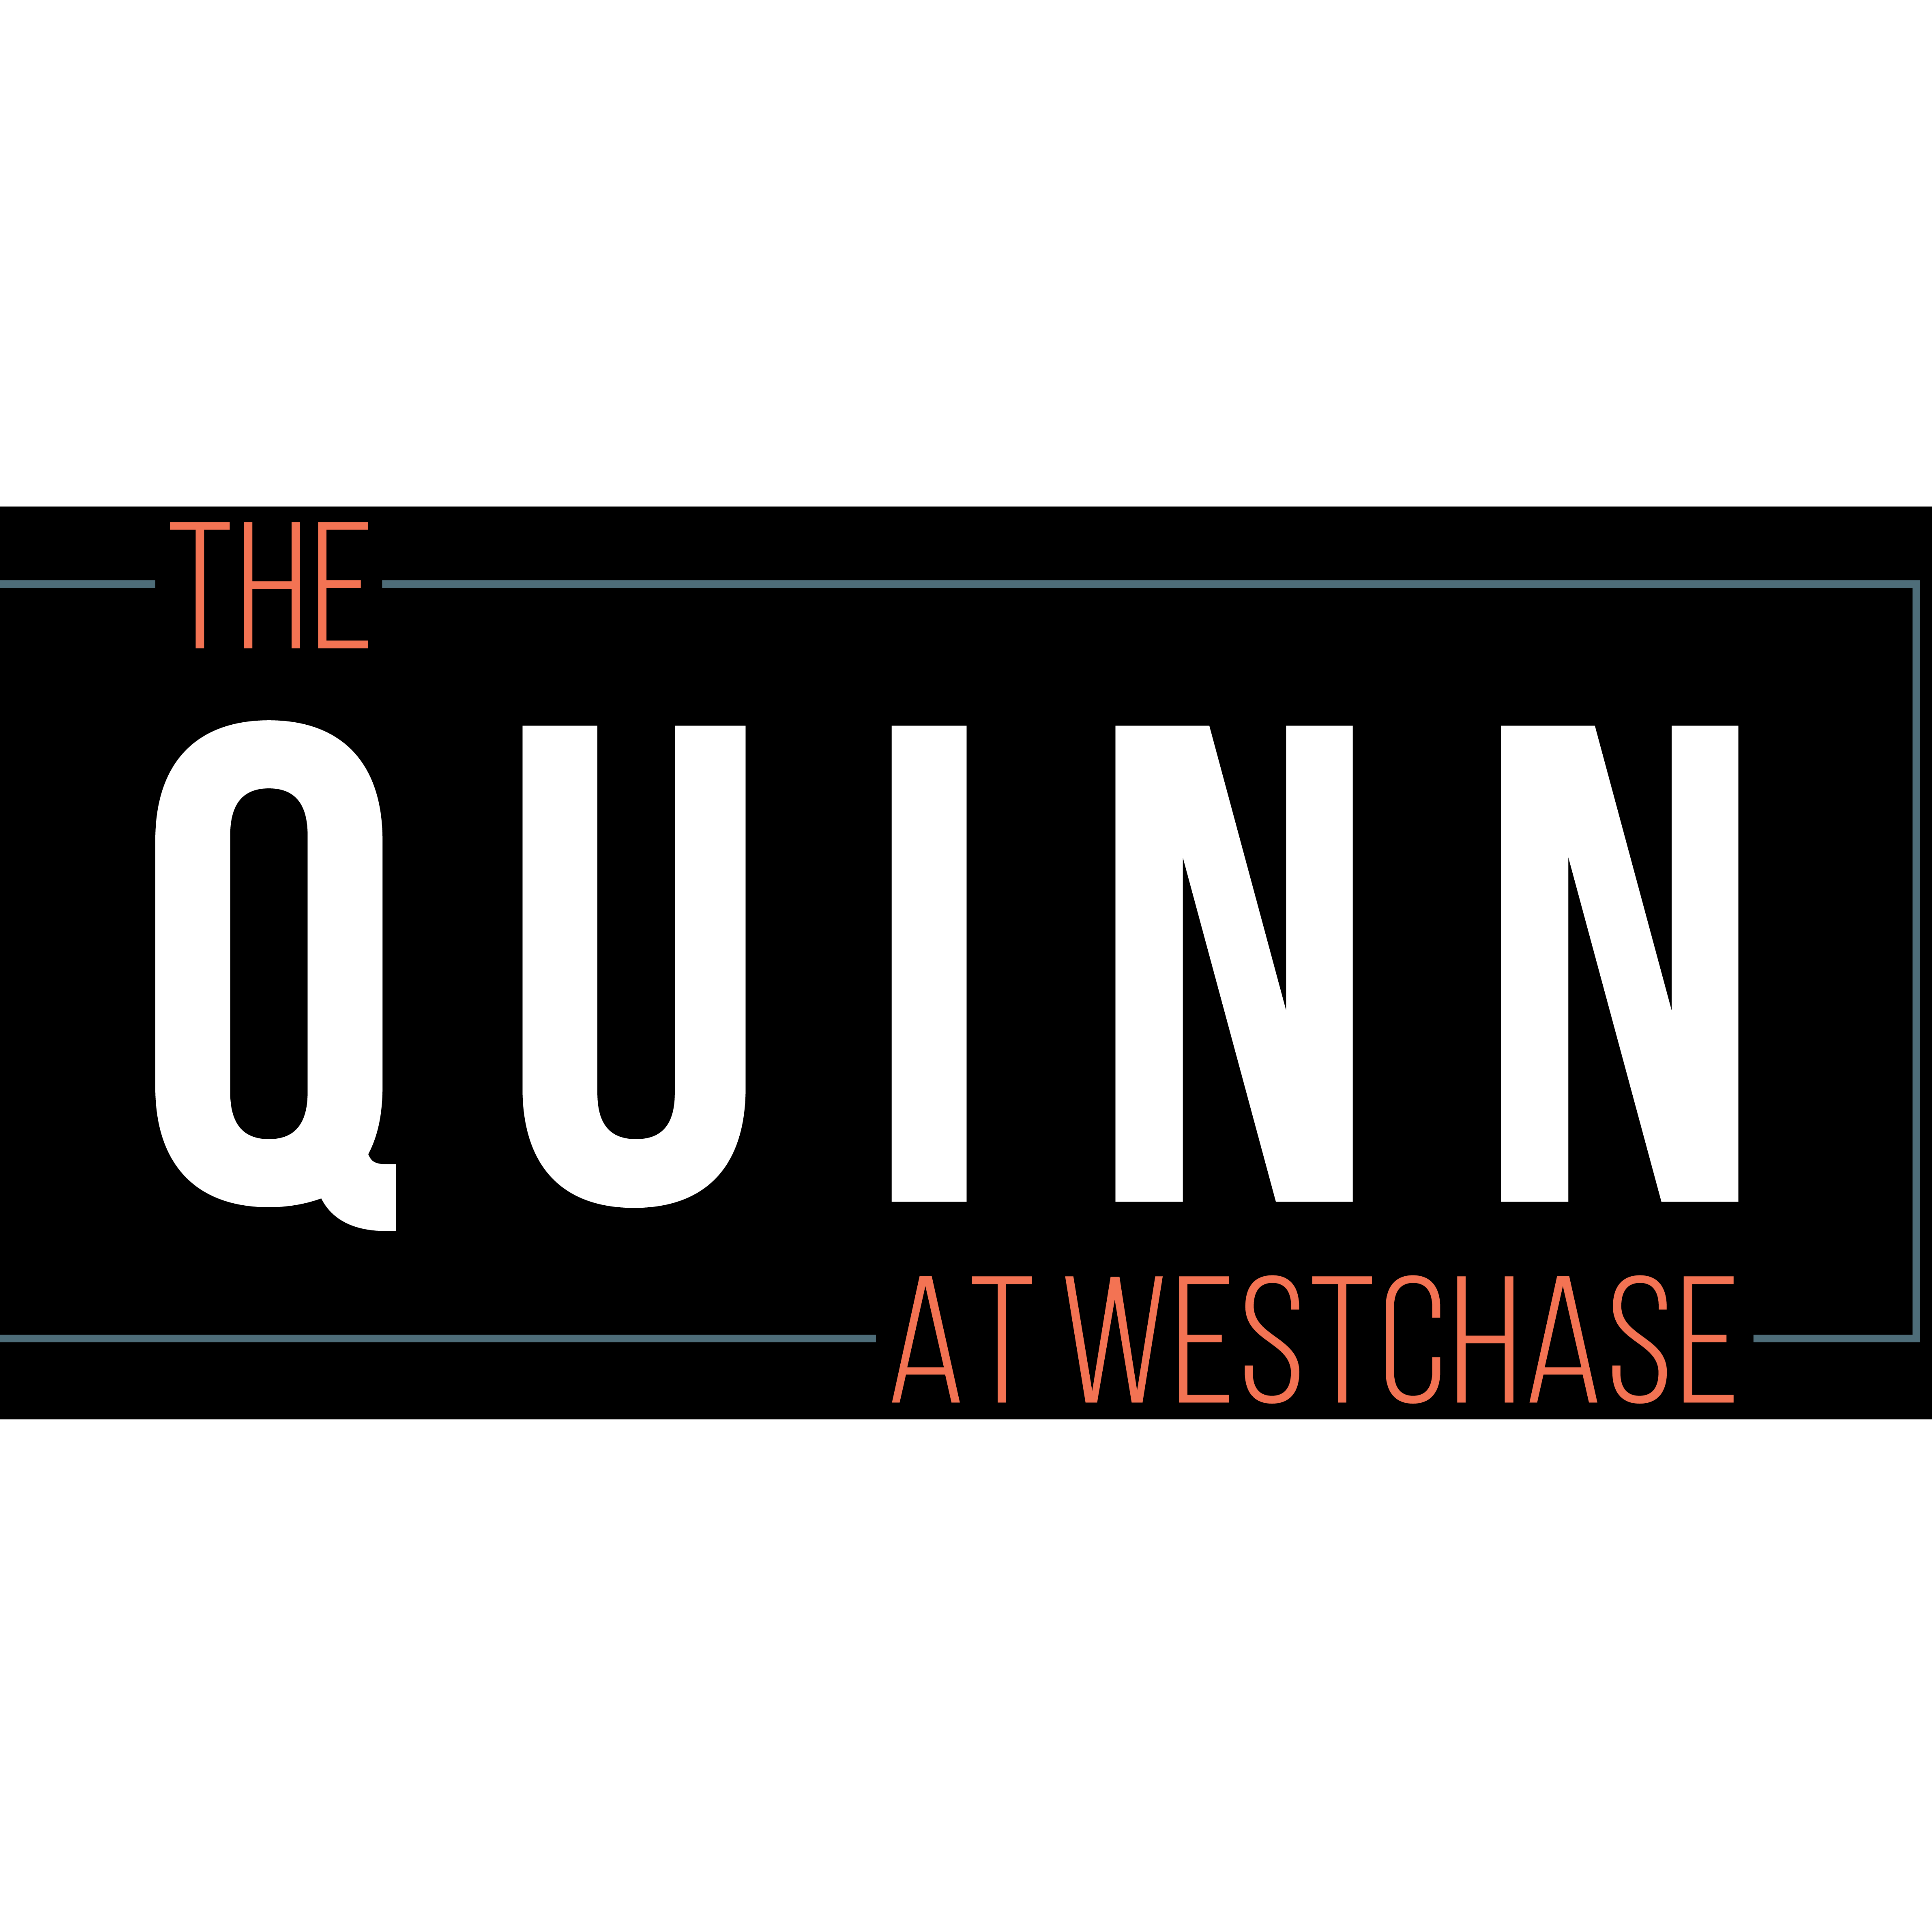 The Quinn at Westchase